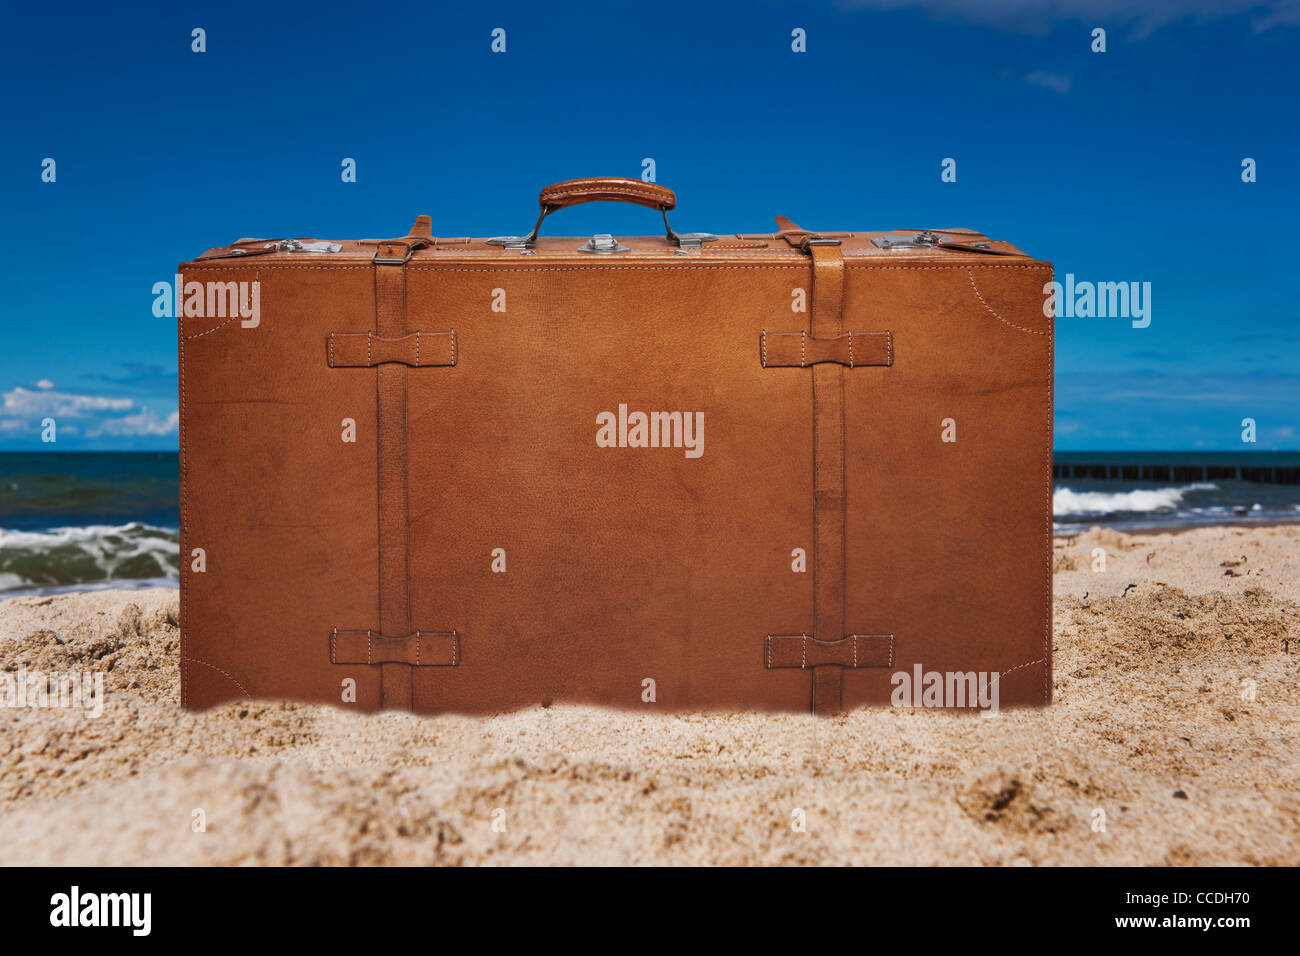 Ein alter brauner Lederkoffer steht am Sandstrand   a old brown leather suitcase upright at the sandy beach - Stock Image